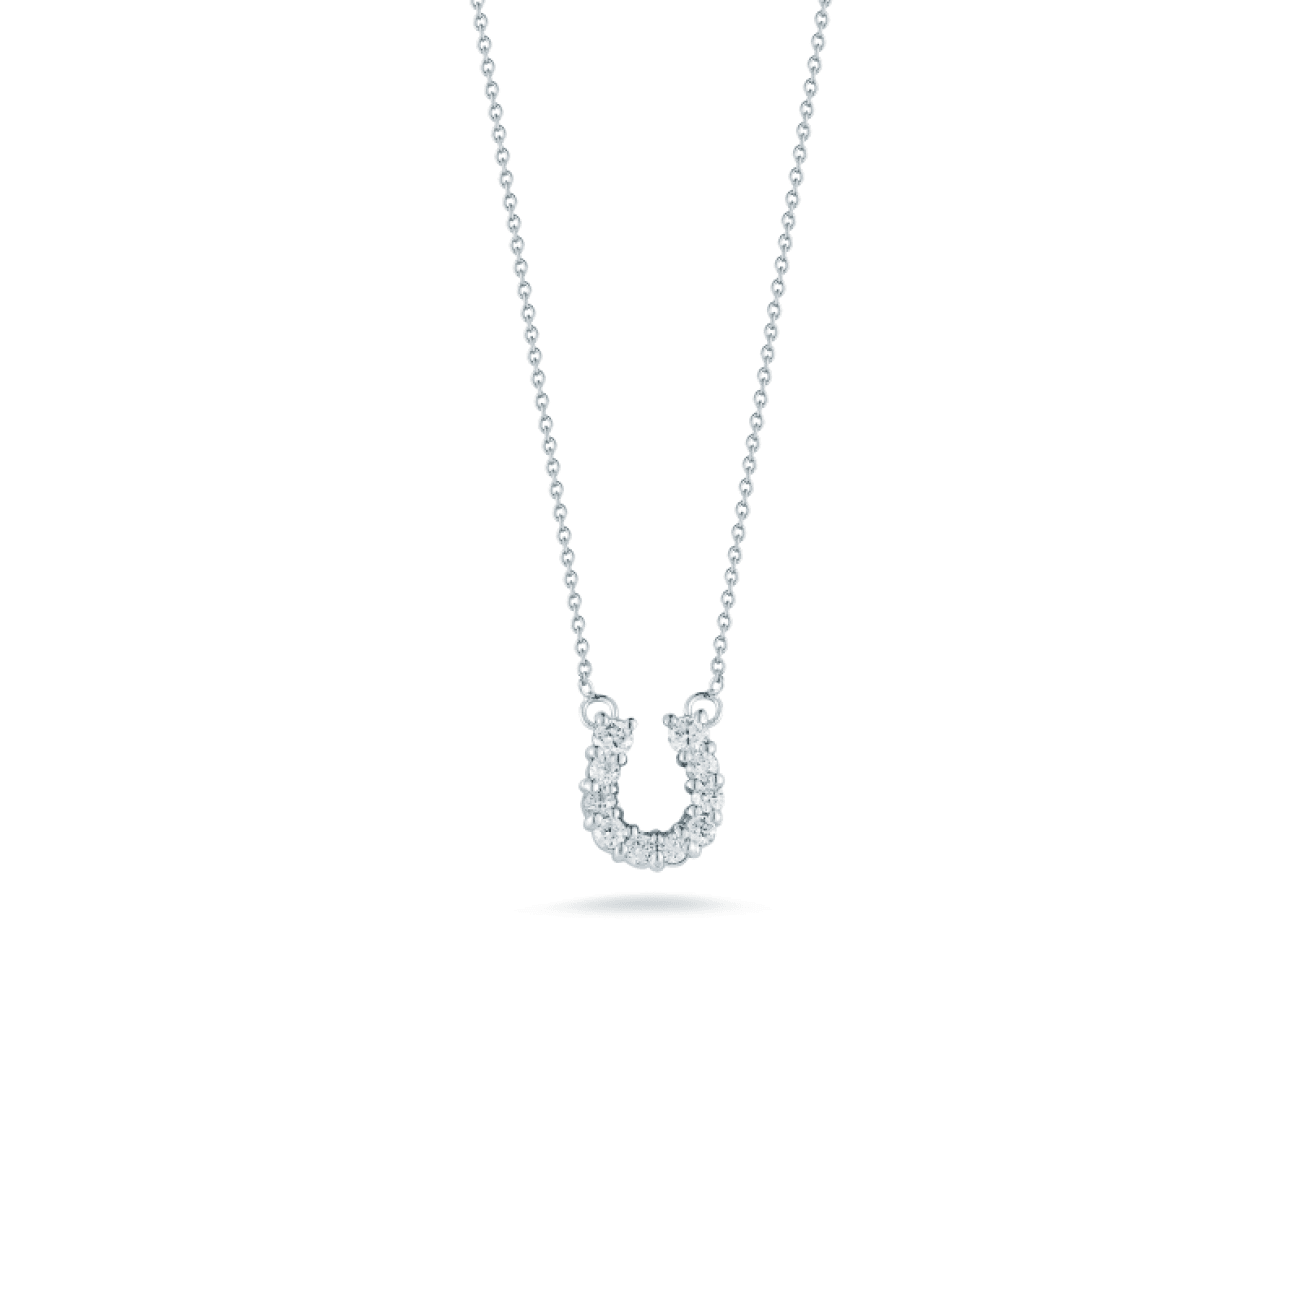 Roberto Coin Jewelry - 18KT GOLD HORSESHOE PENDANT WITH DIAMONDS | Manfredi Jewels